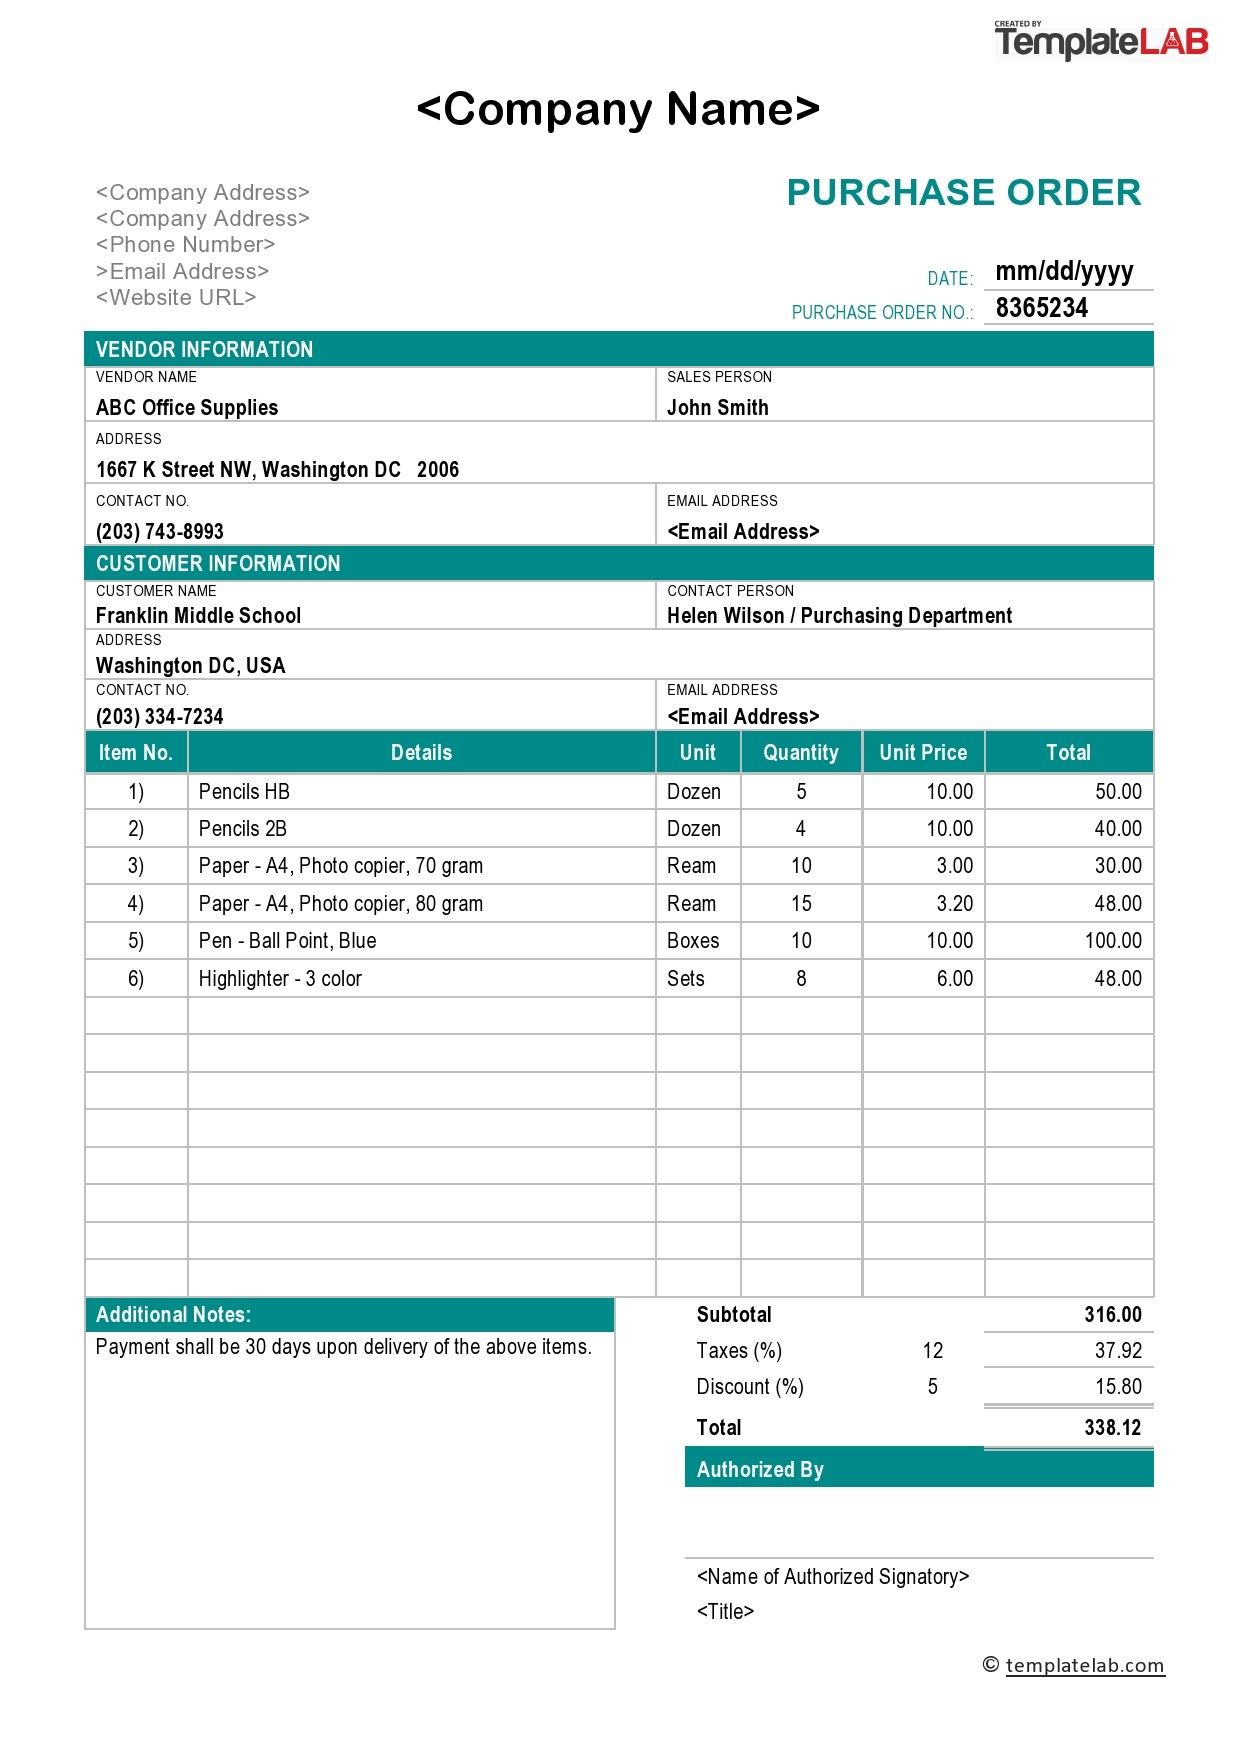 Free Purchase Order Template 02 - TemplateLab